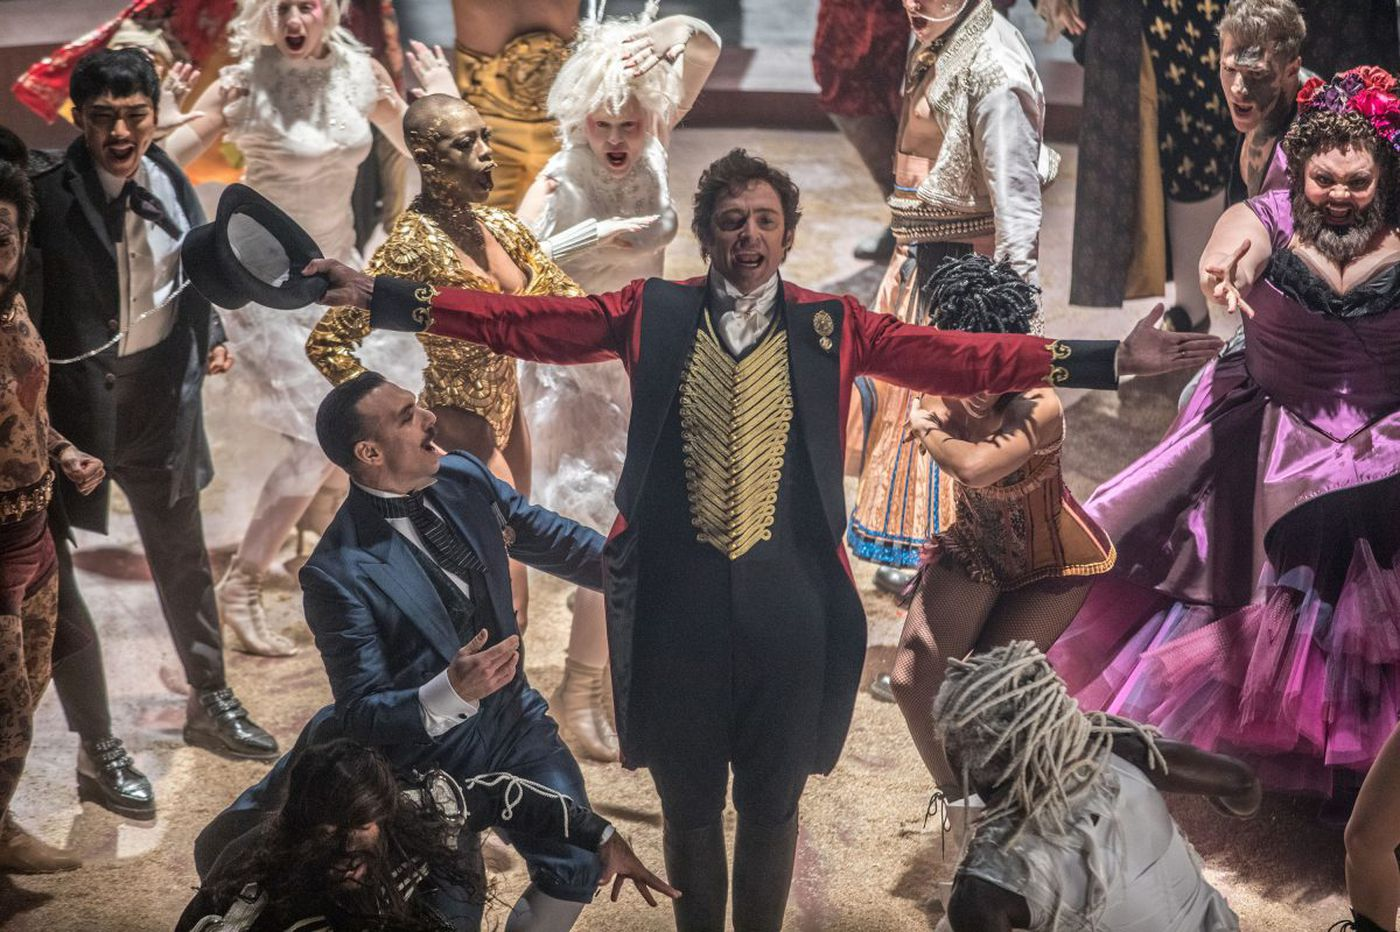 Ardmore native Benj Pasek wins Golden Globe for best song, from 'Greatest Showman'